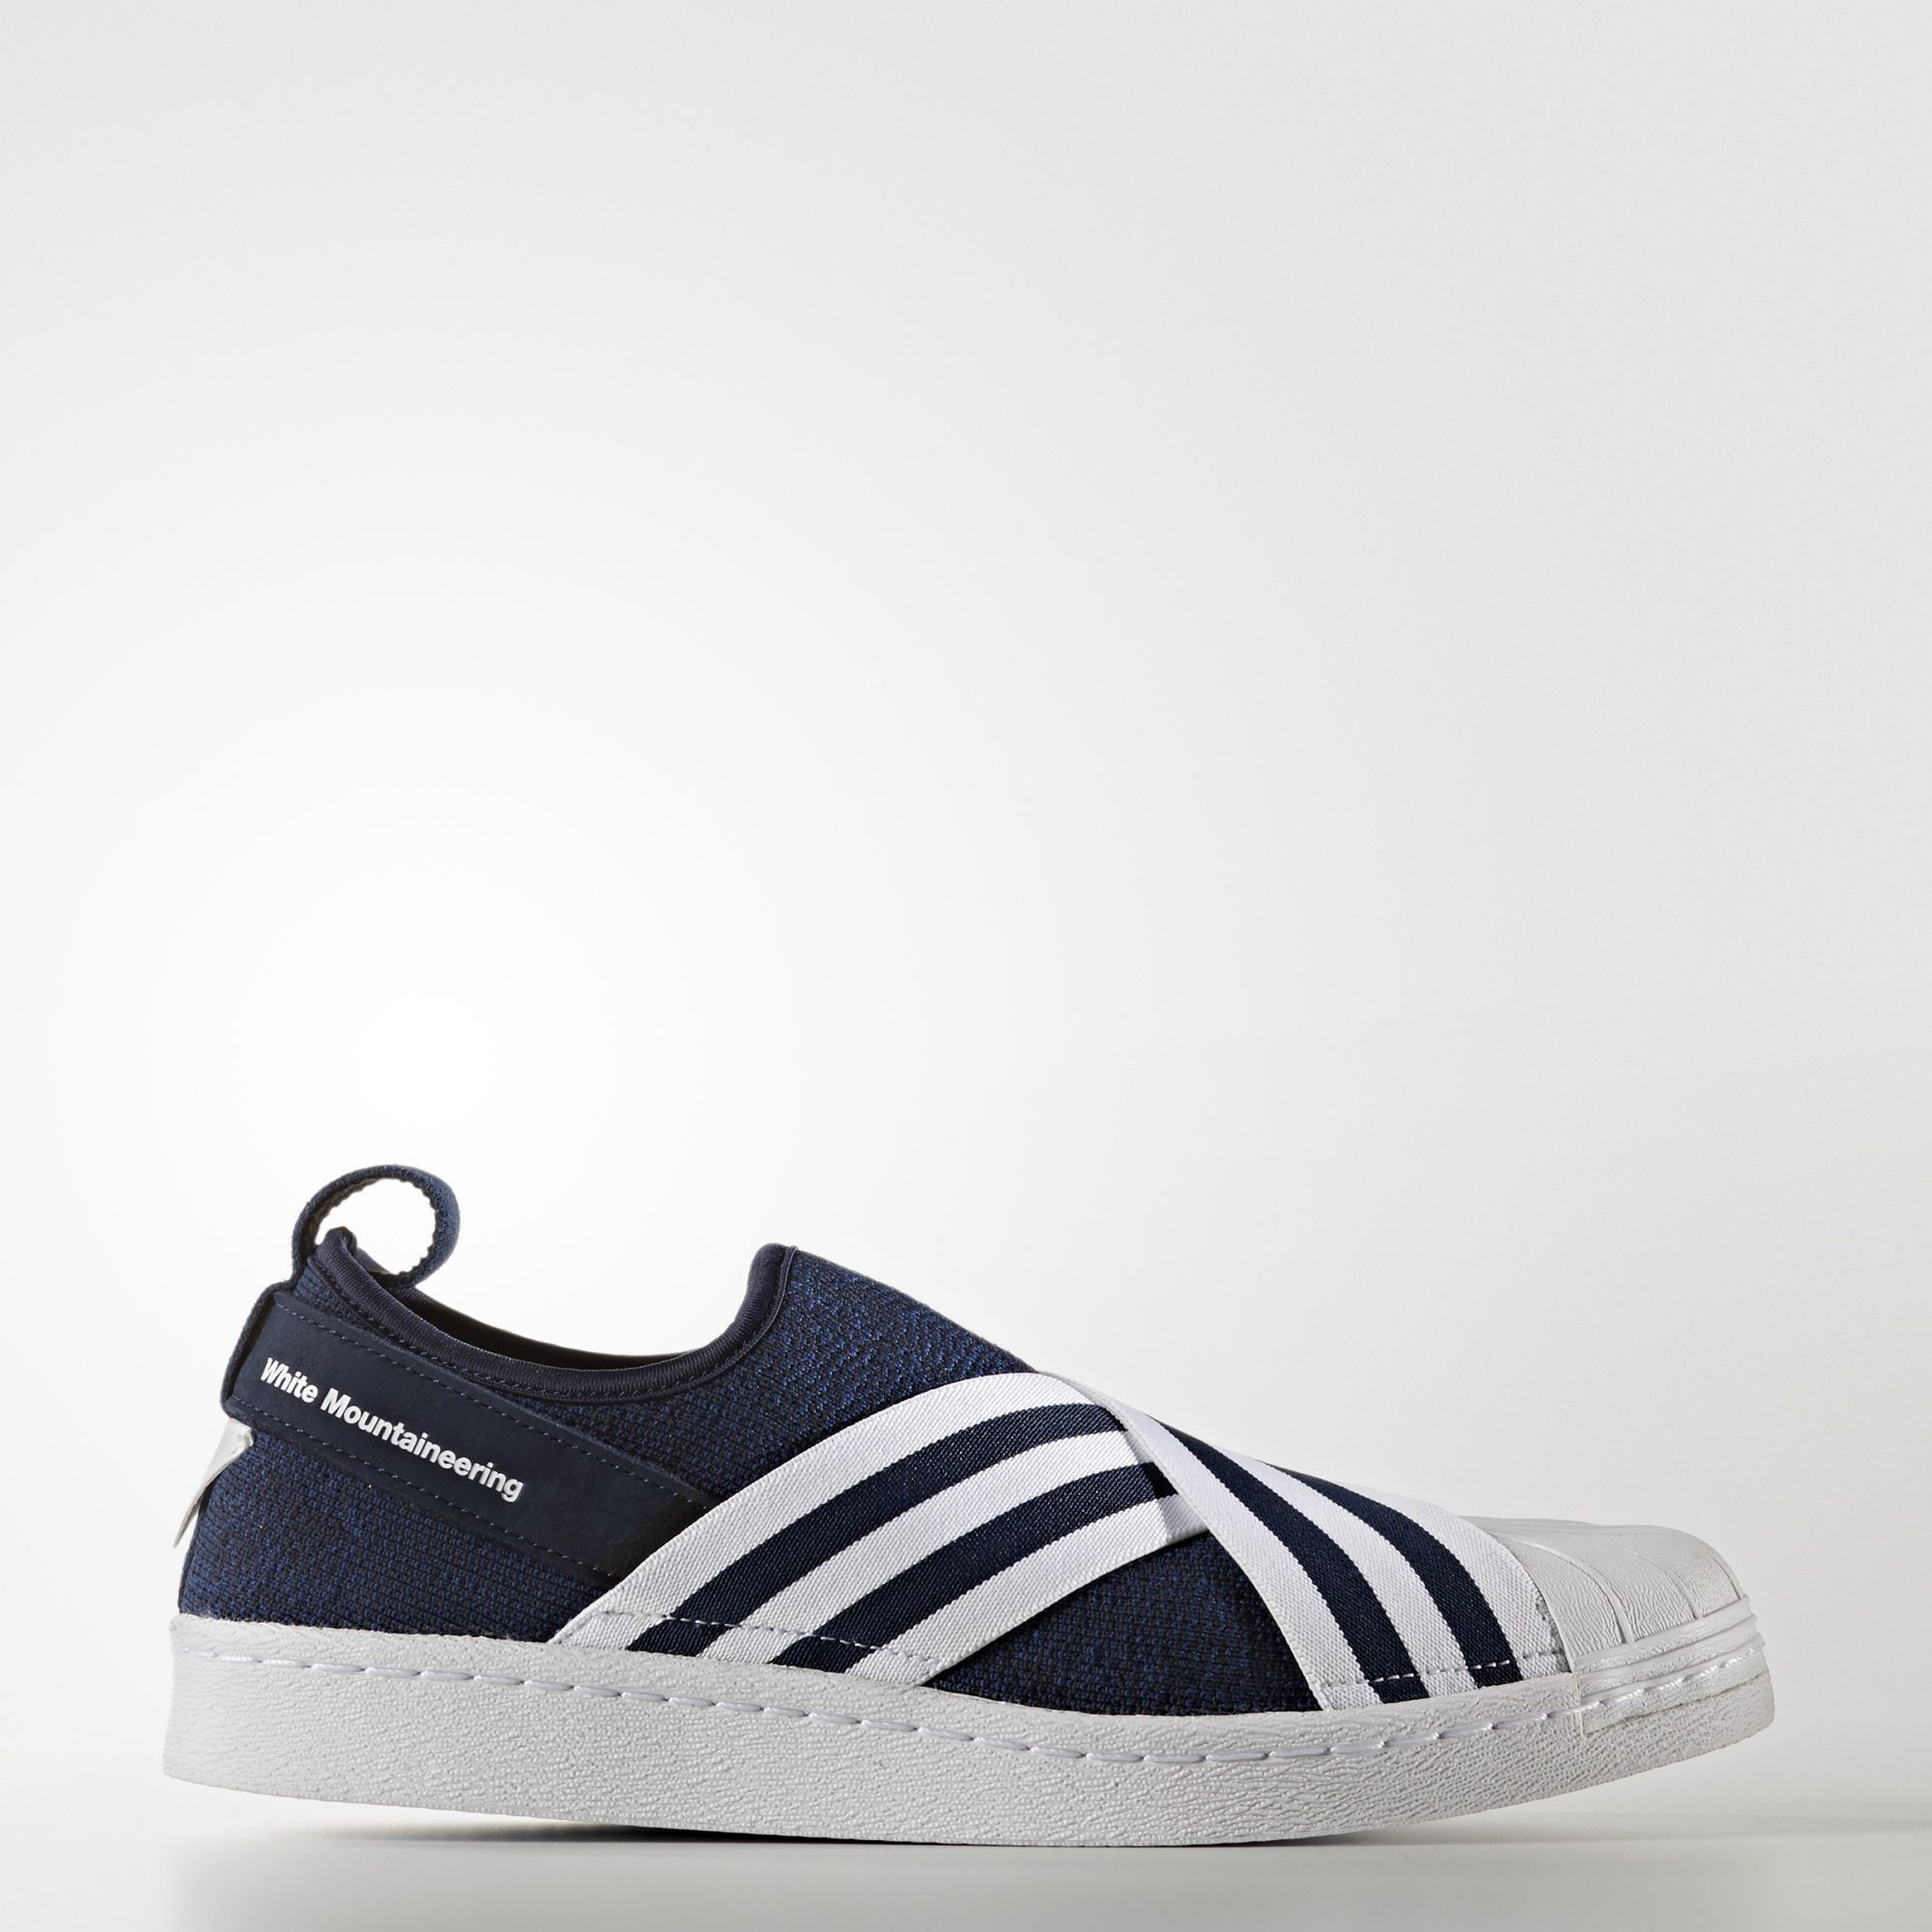 Cheap Adidas Superstar 80s Primeknit (KICKS)